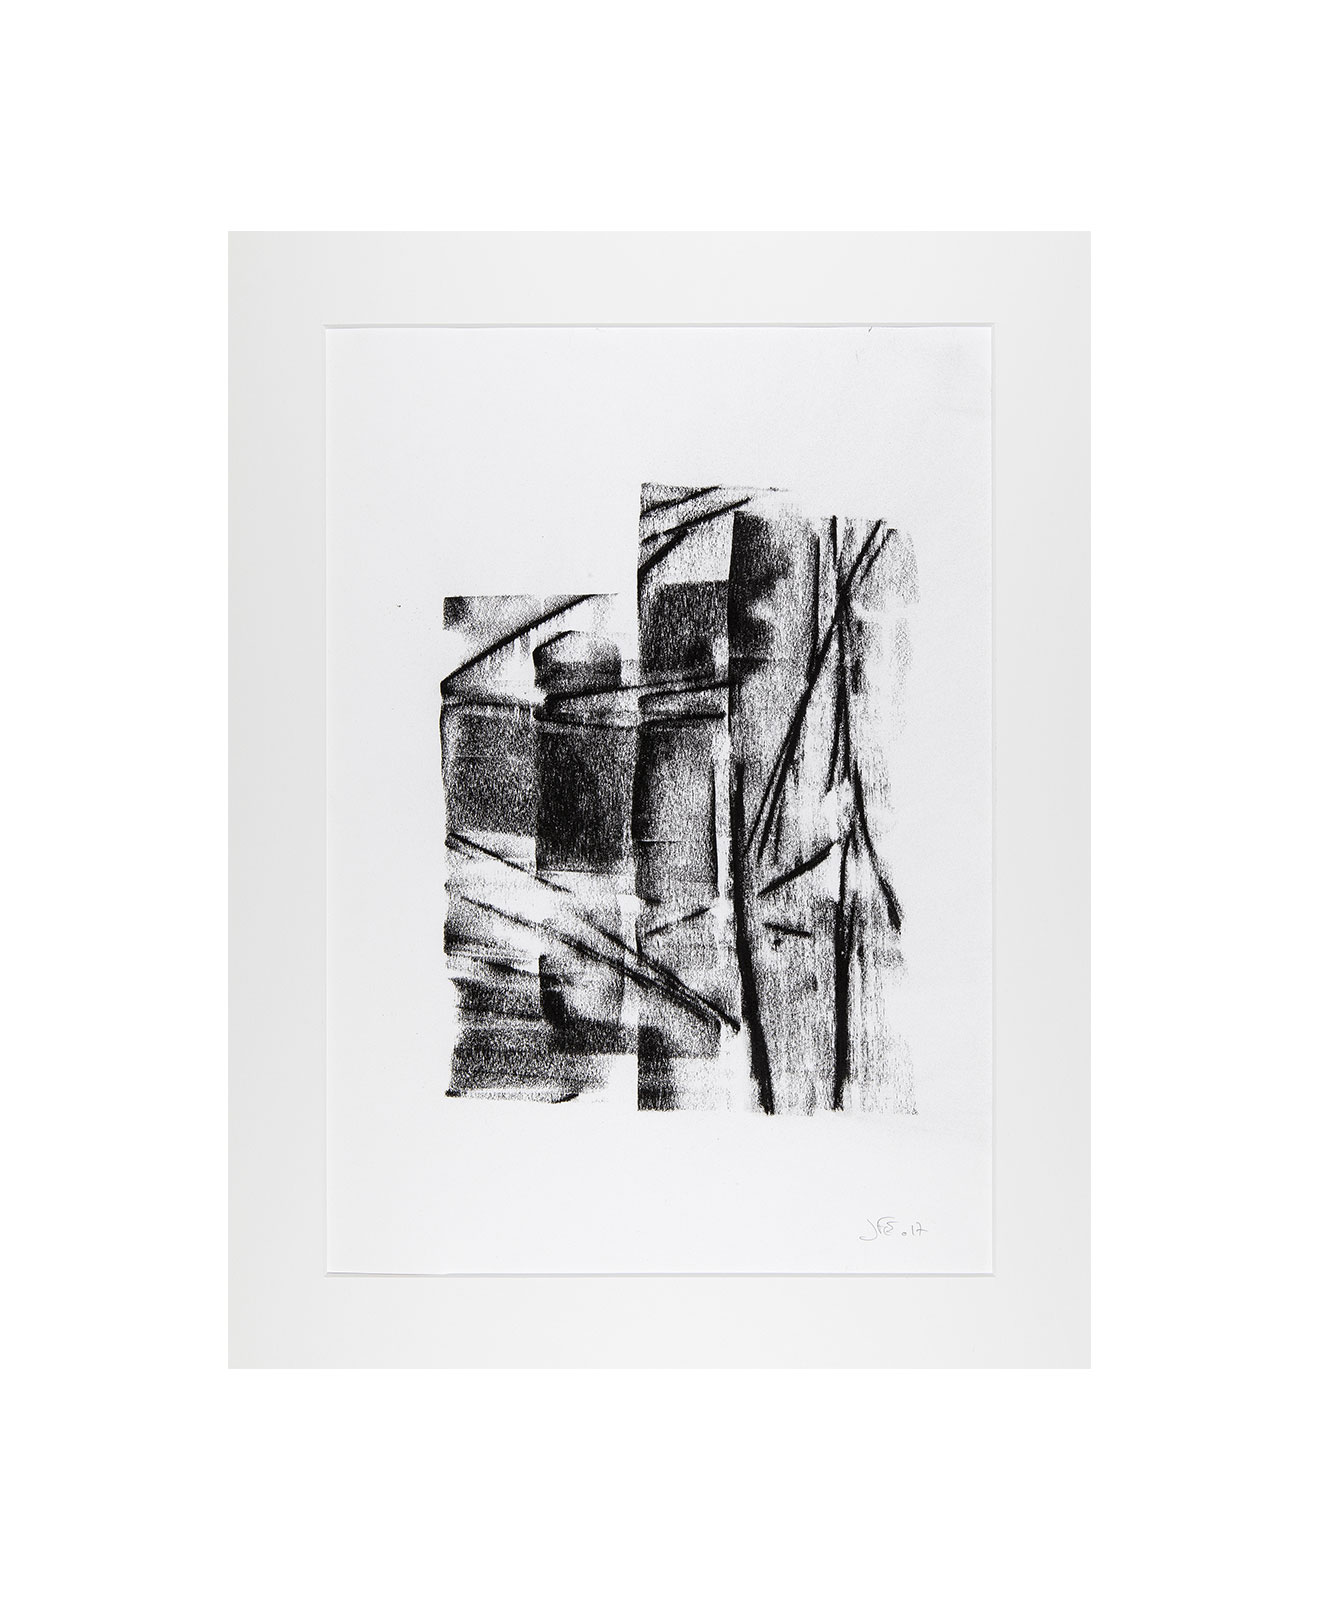 Cha 1.4, Charcoal on paper, black and white artwork, drawing, jf escande, contemporary art